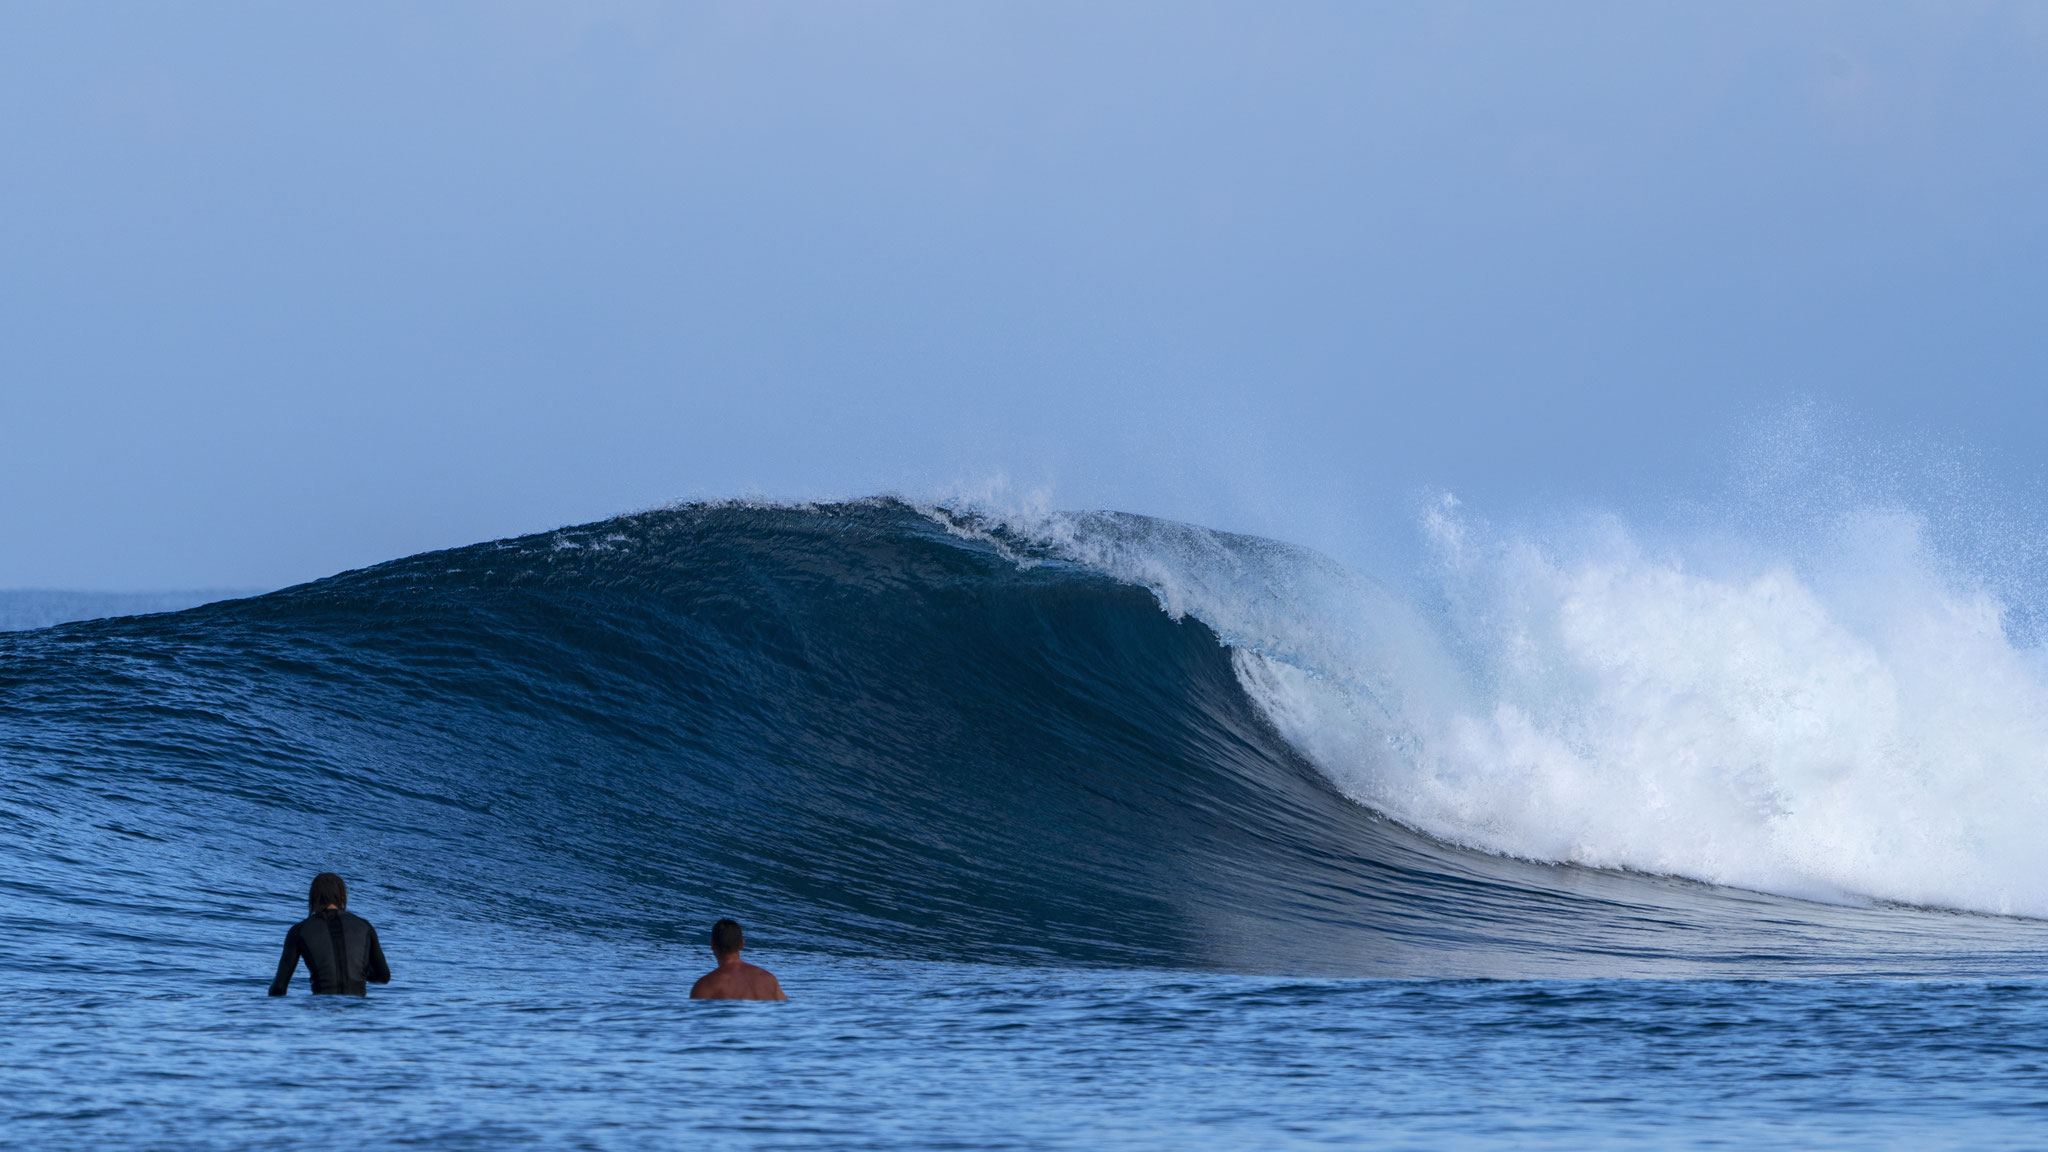 Madagascar credit: Roger Sharp, Carve Surfing Magazine